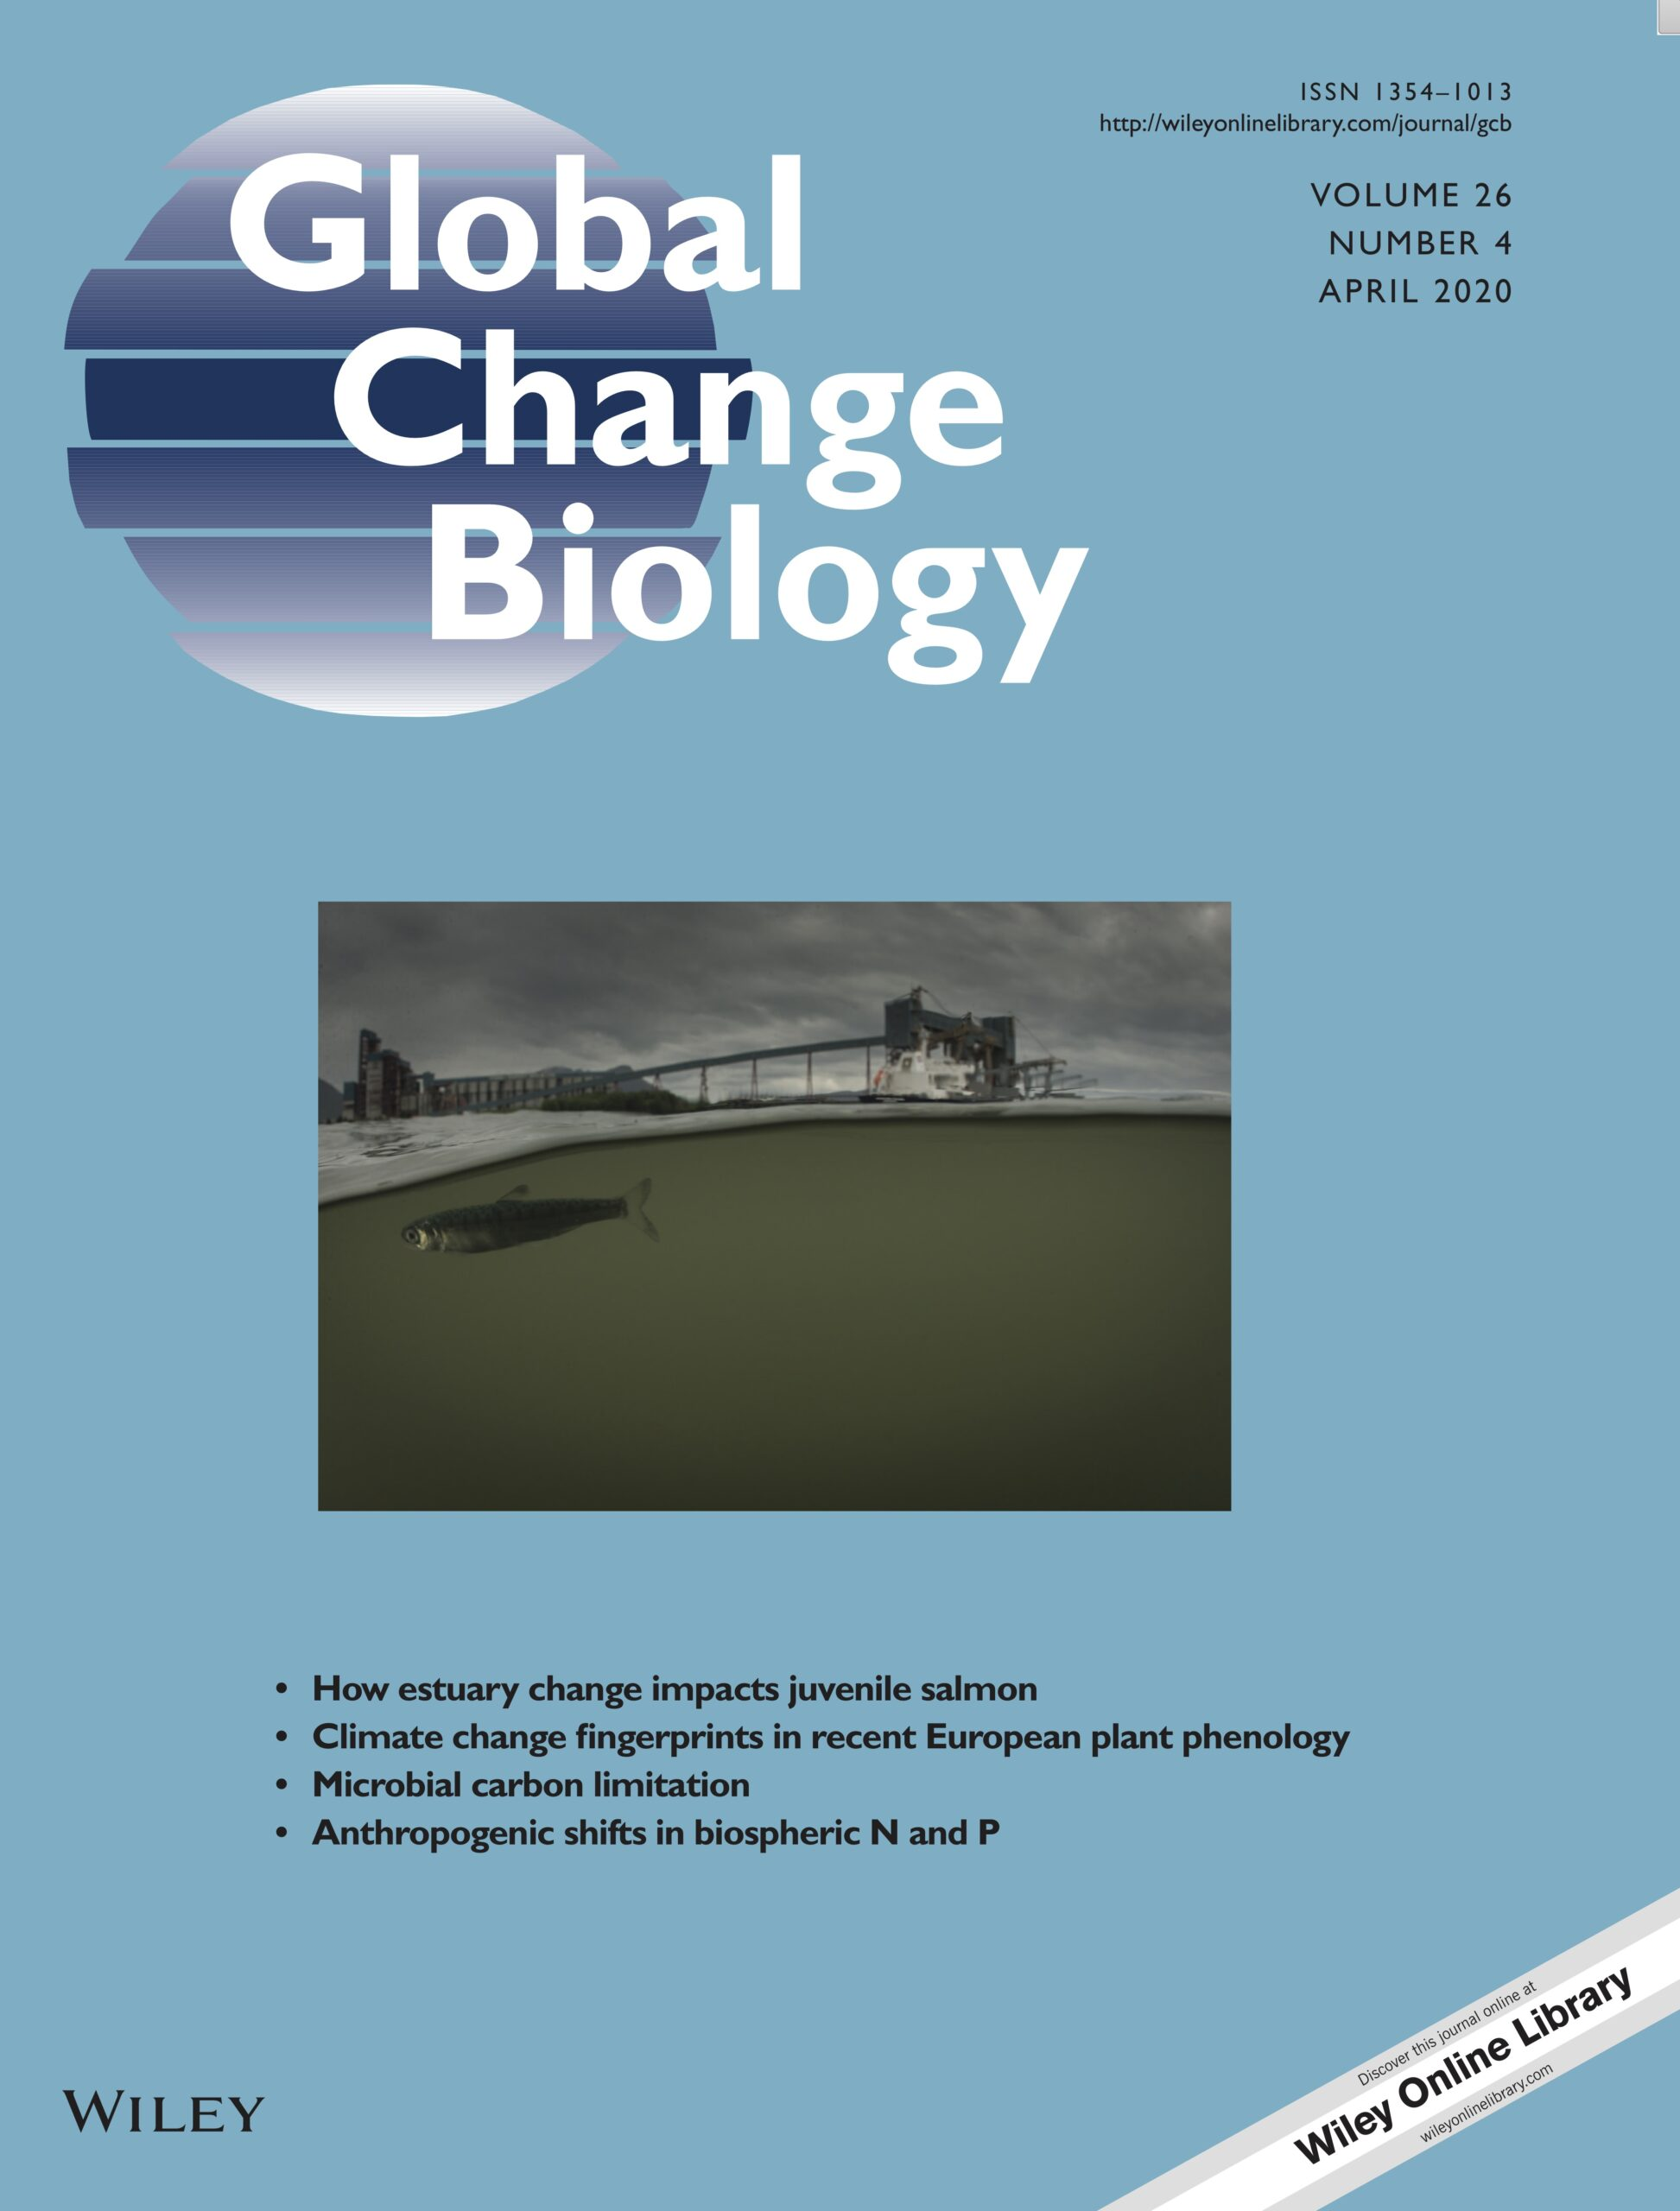 Hodgson et al. 2020: Changing estuaries and impacts on juvenile salmon: a systematic review